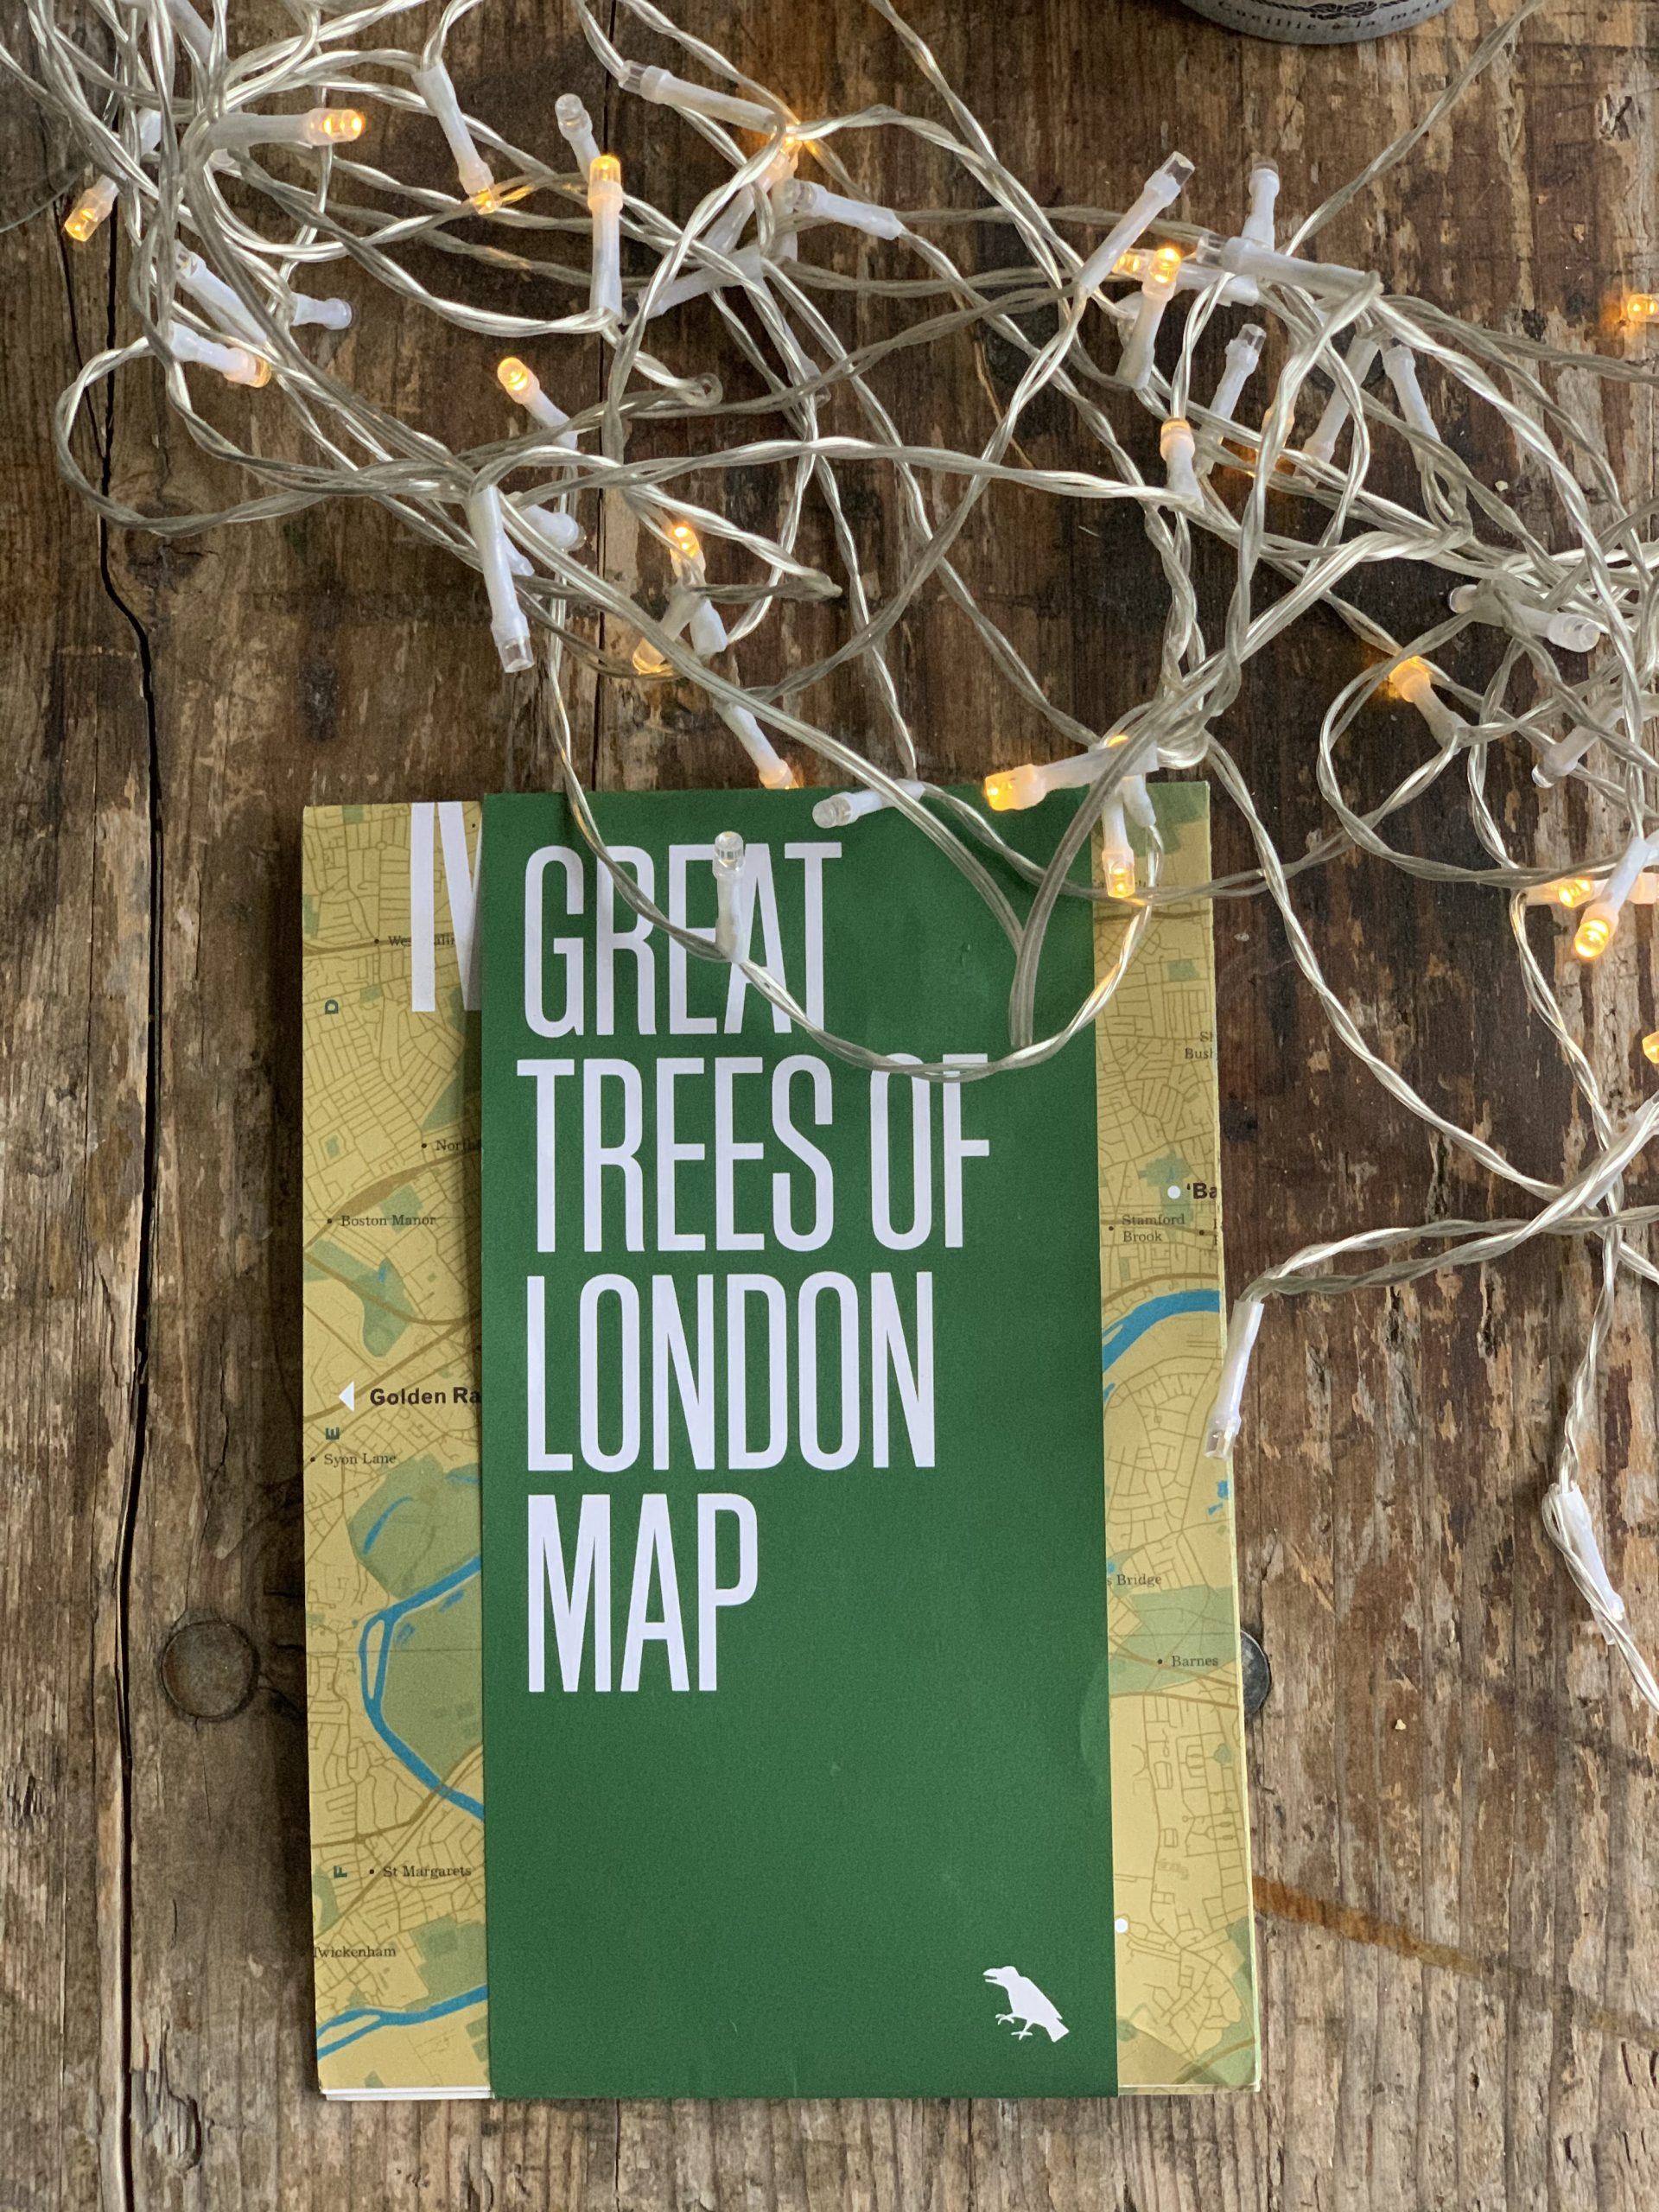 Great Trees of London map pic: Kerstin rodgers/msmarmitelover.com